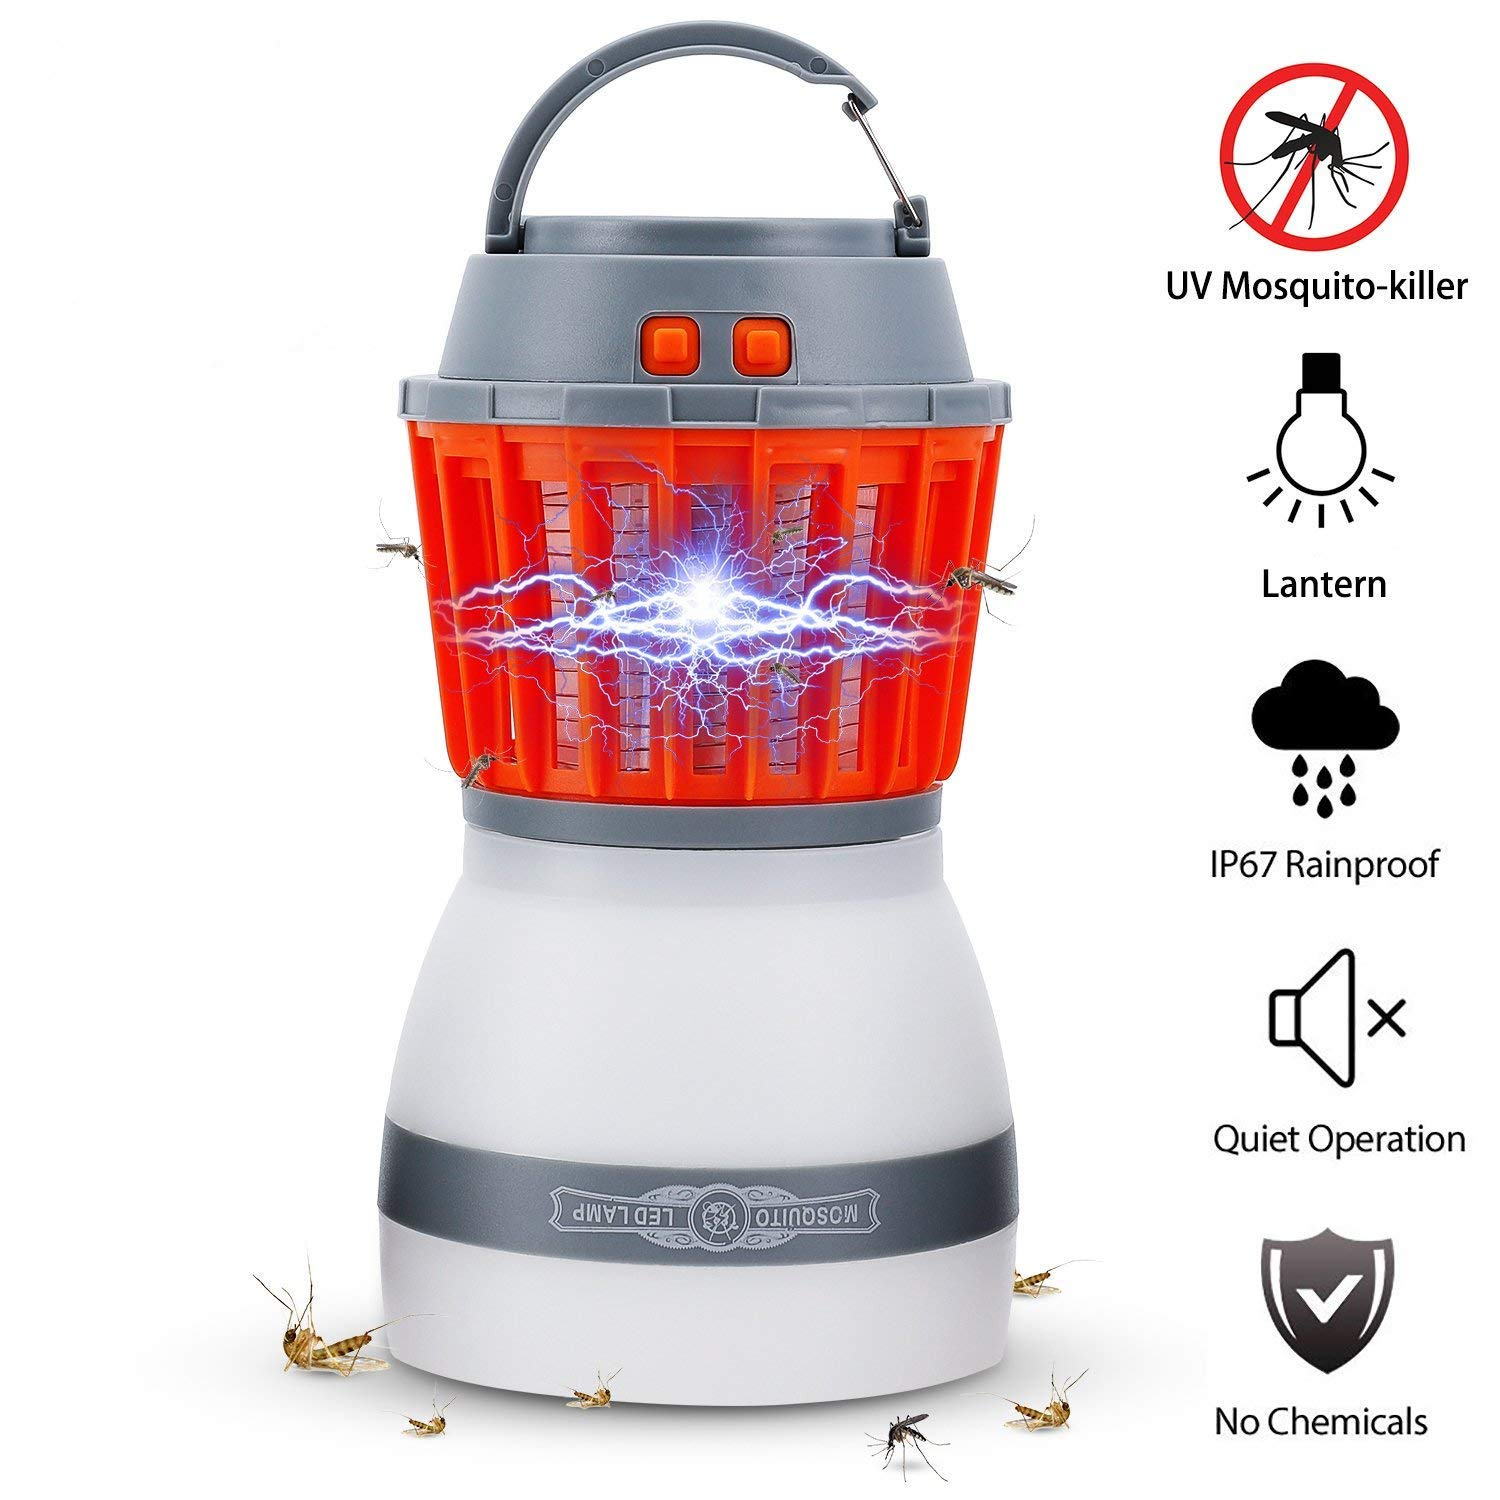 Bug Zapper Lamp-Mosquito Zapper Lamp-2-In-1 Zapper Lantern Charge Via USB-Lightweight Camping Gear & Accessories For The Outdoors & Emergencies-IP67 Waterproof-Compact- 2200mAh Rechargeable Travel Lig